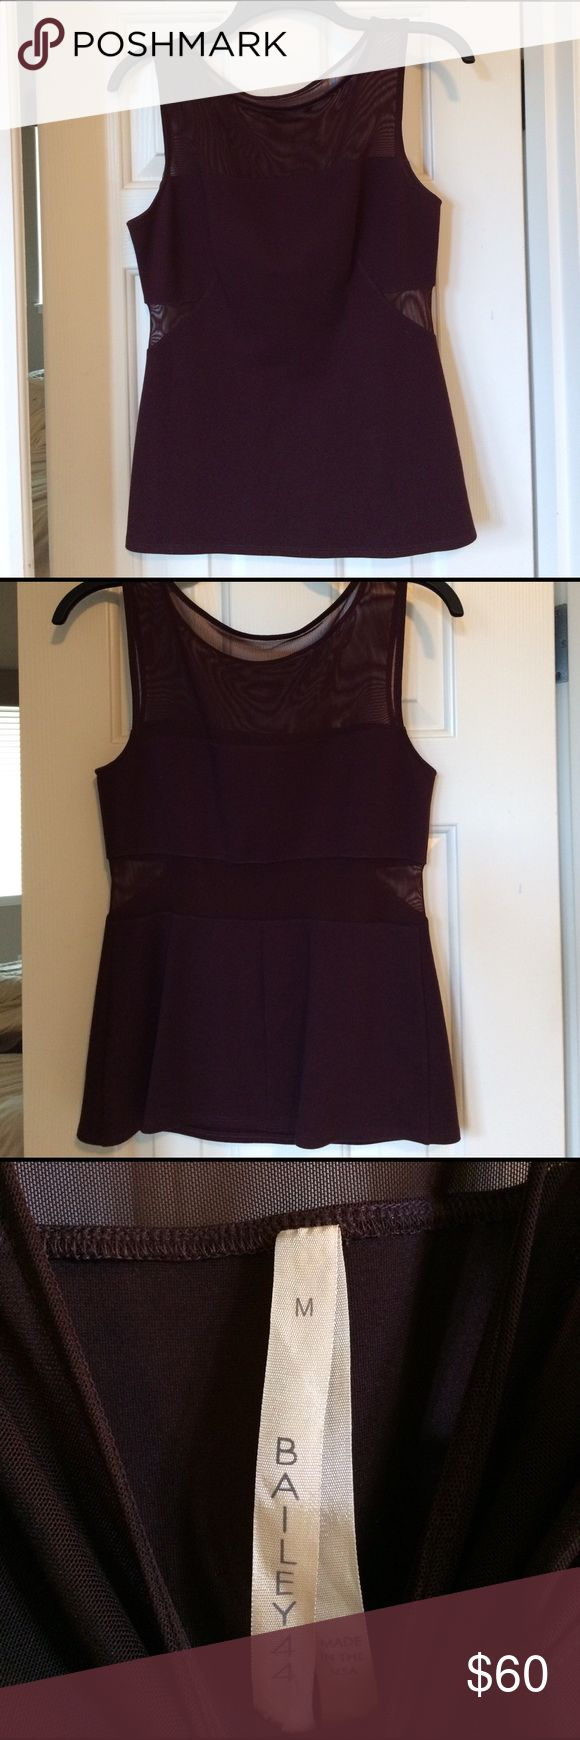 Bailey 44 Eggplant top Bailey 44 eggplant color top- mesh on sides and mesh strip in back- beautiful, perfect for a night out. Great condition Bailey 44 Tops Tank Tops